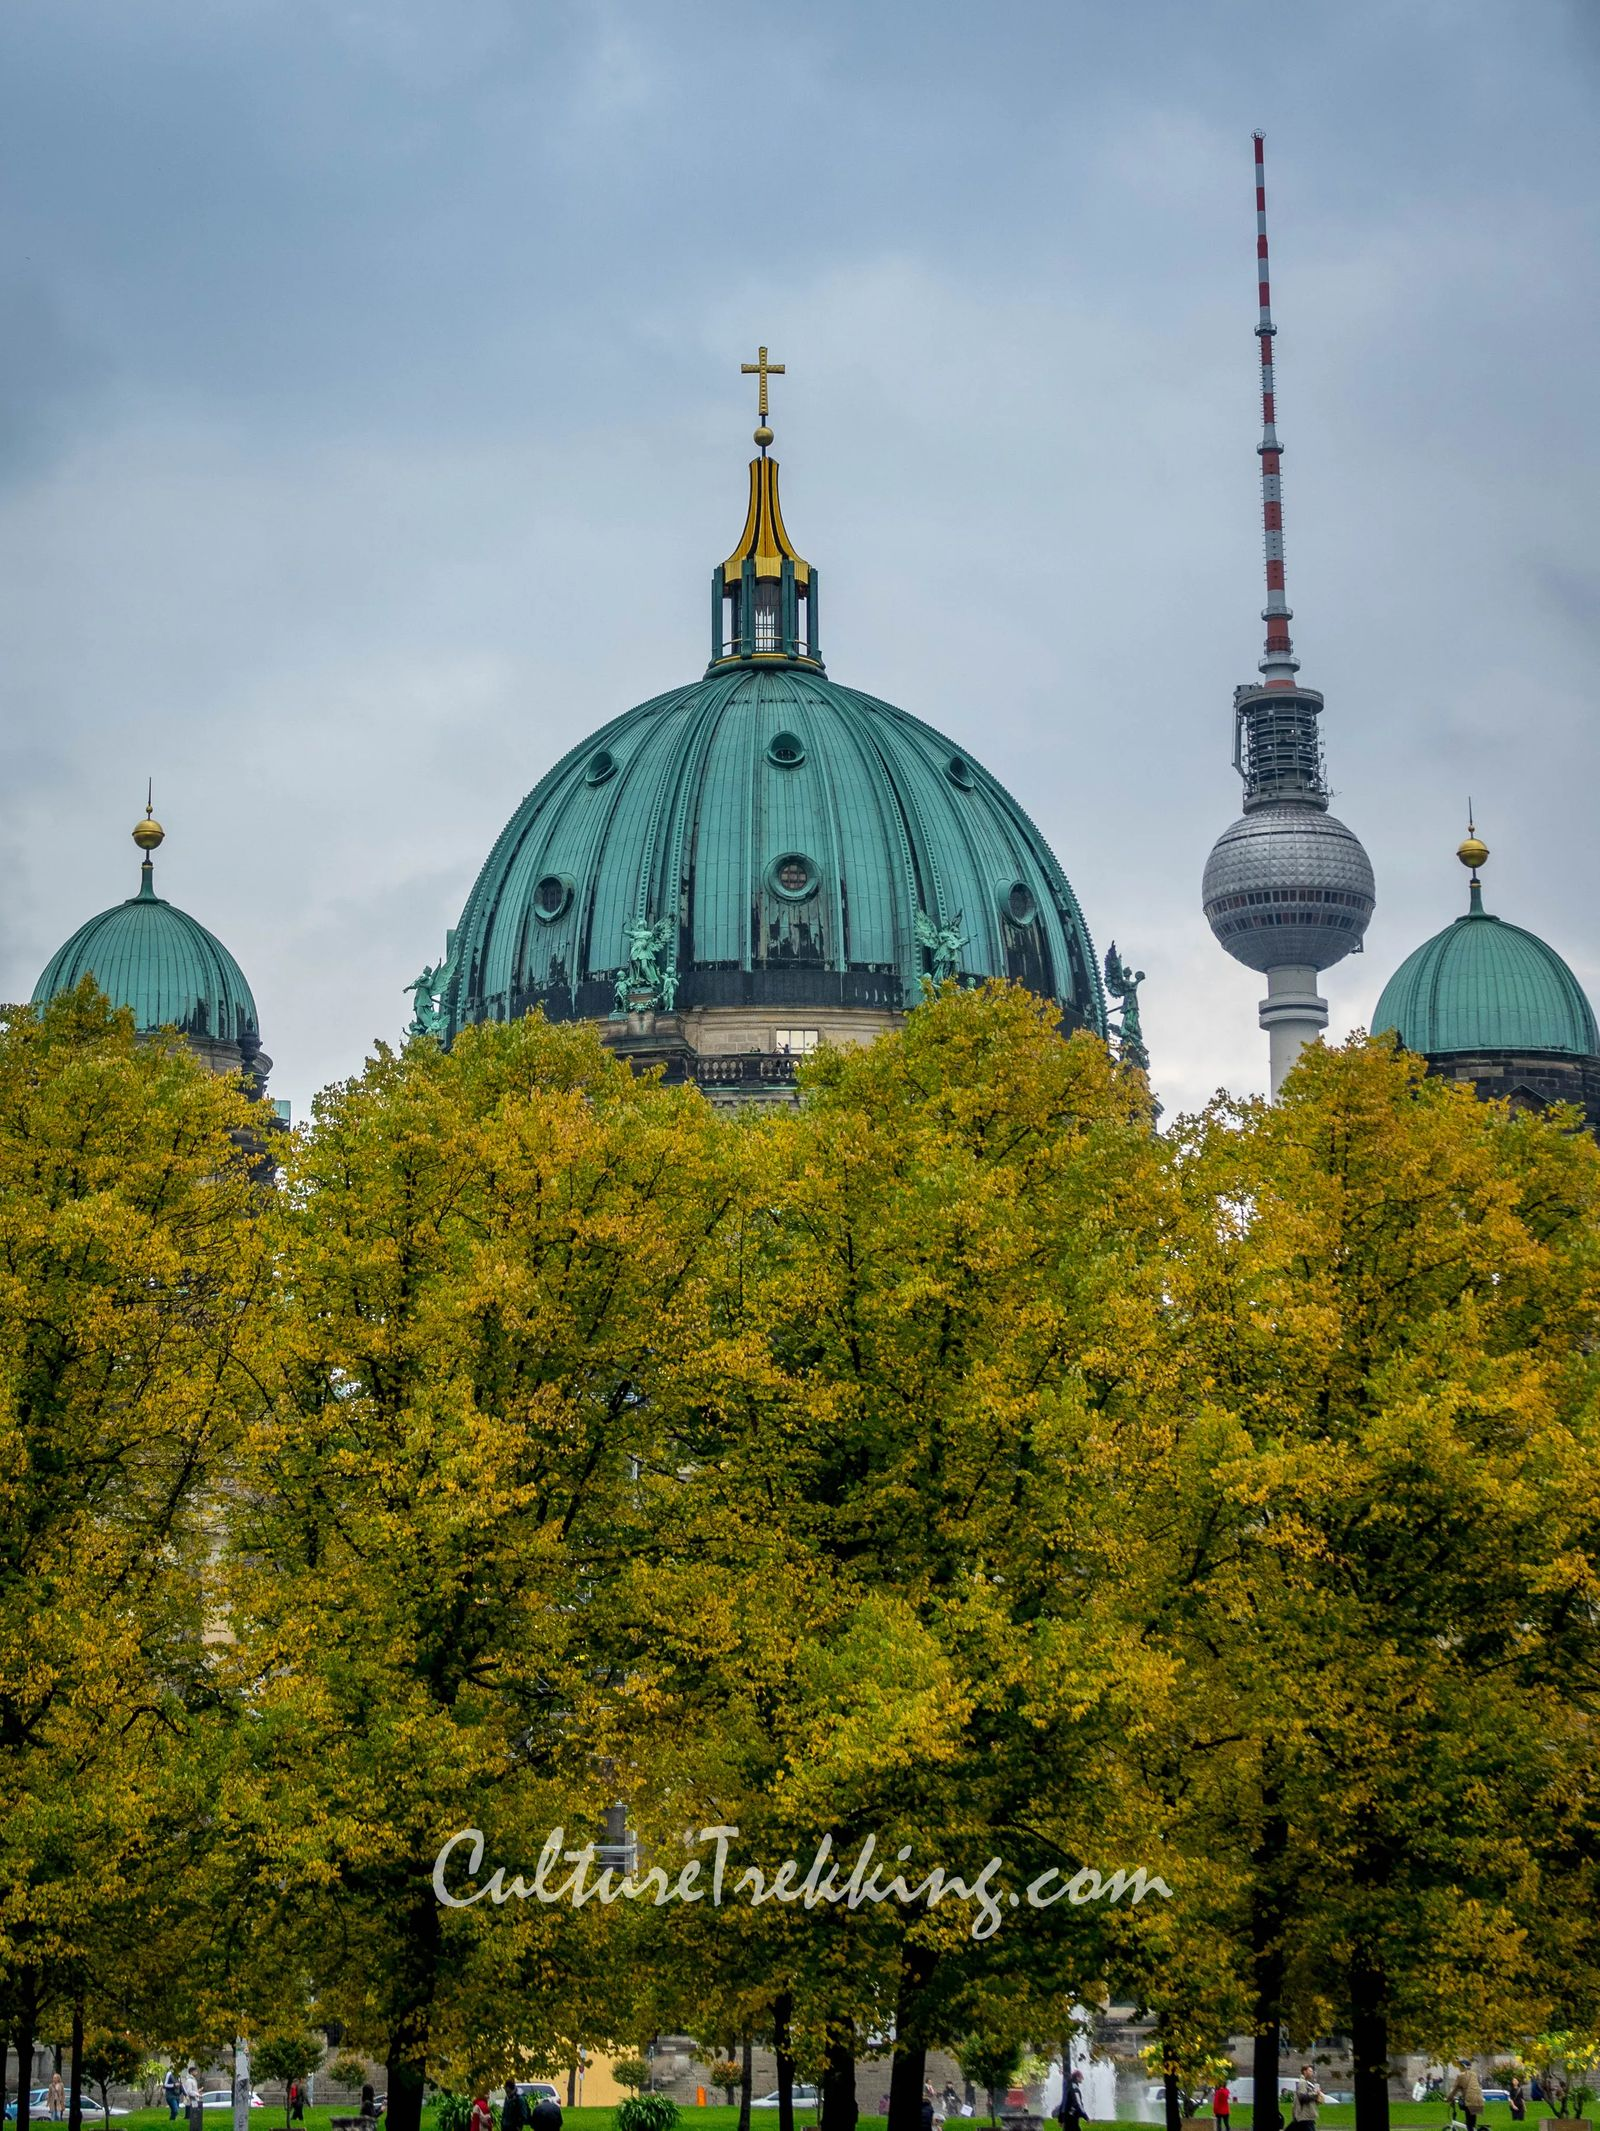 backpacking Eastern Europe 12 hours in berlin and what to see. A church steeple in green topped with a cross and a radio tower in the back